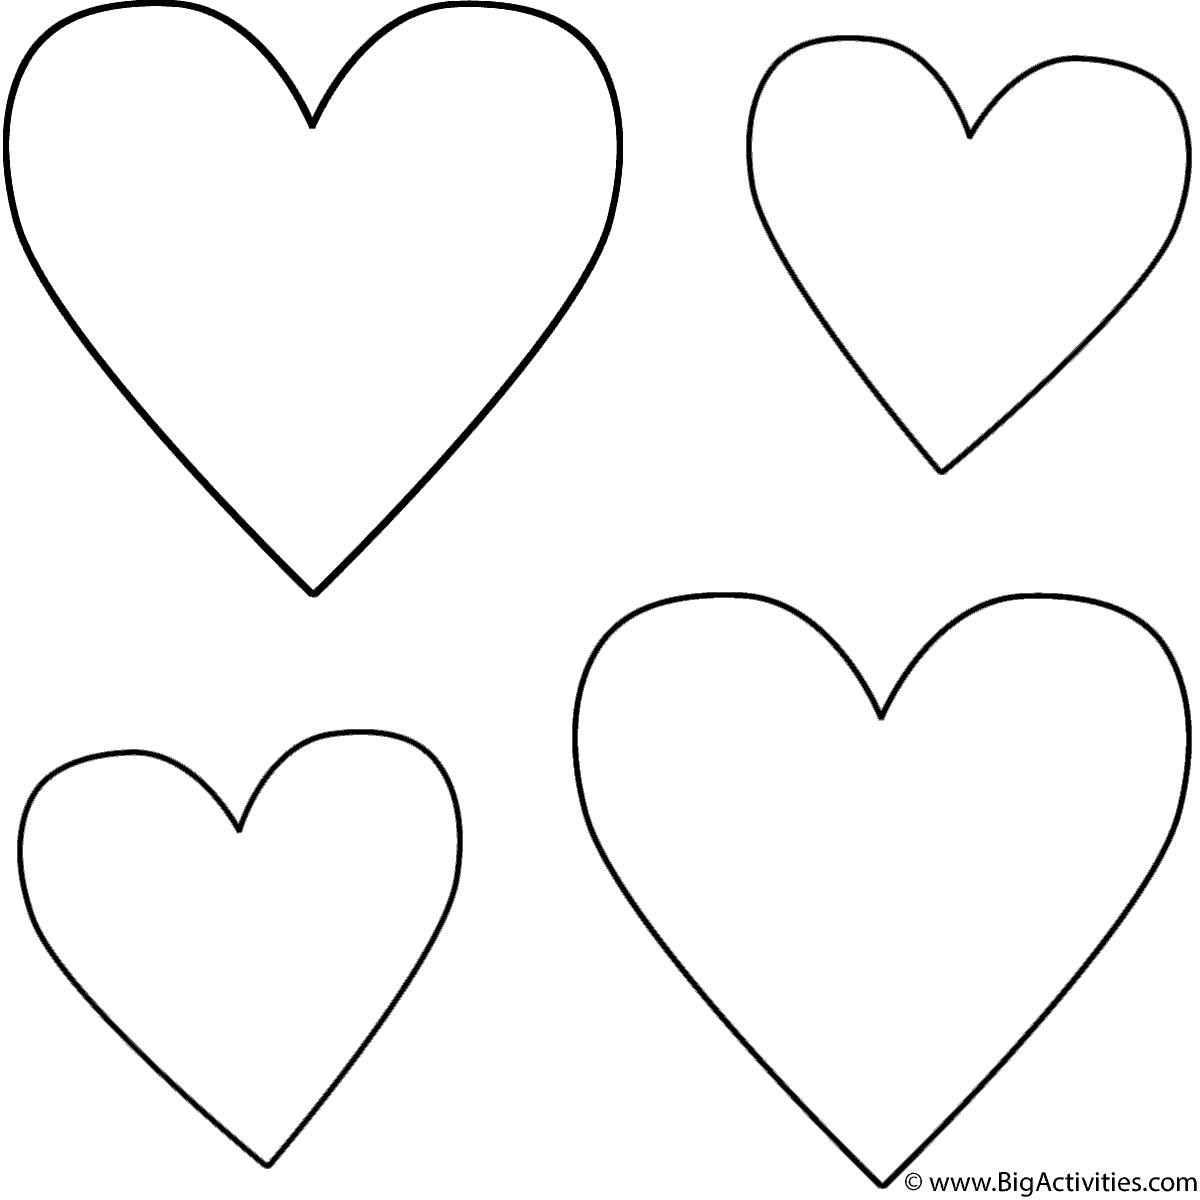 valentines heart coloring pages four hearts coloring page valentine39s day heart valentines pages coloring